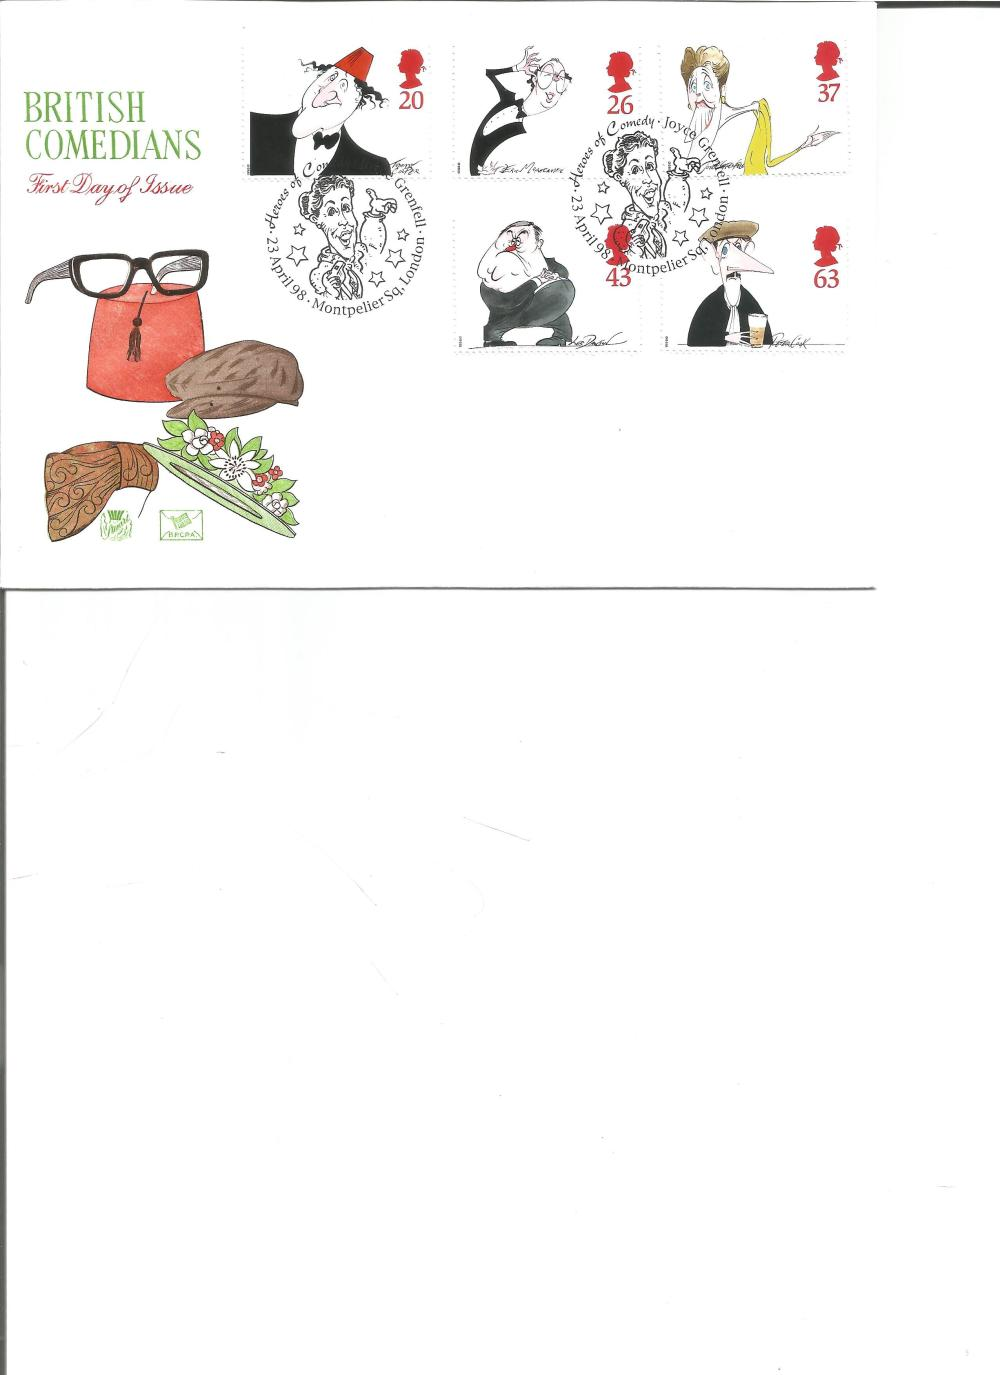 FDC British Comedians c/w set of five commemorative stamps, Double PM Heroes of Comedy Joyce